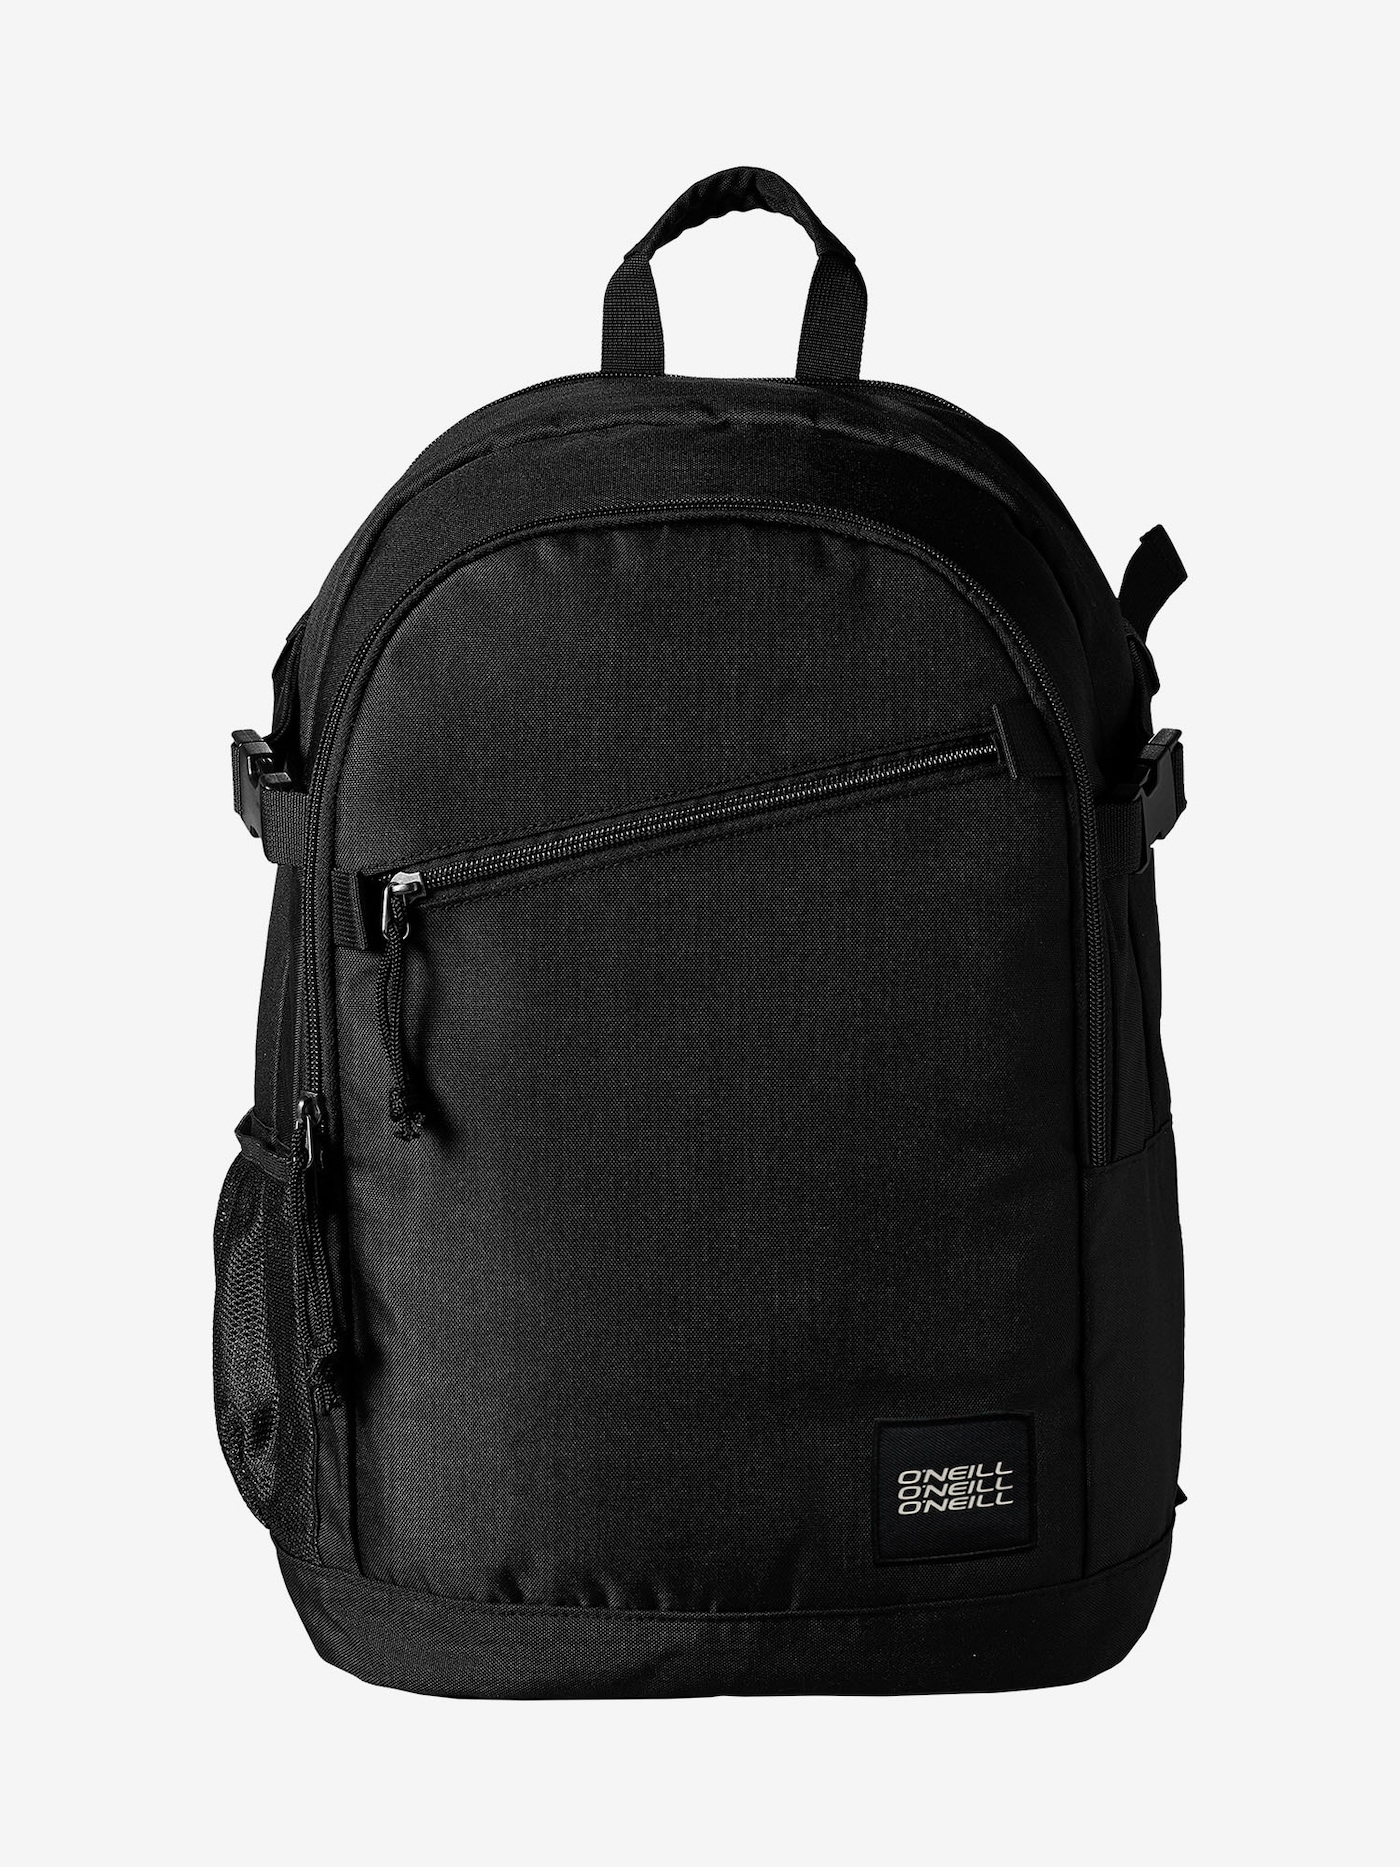 ONeill Backpack O ́Neill Bm Easy Rider Backpack